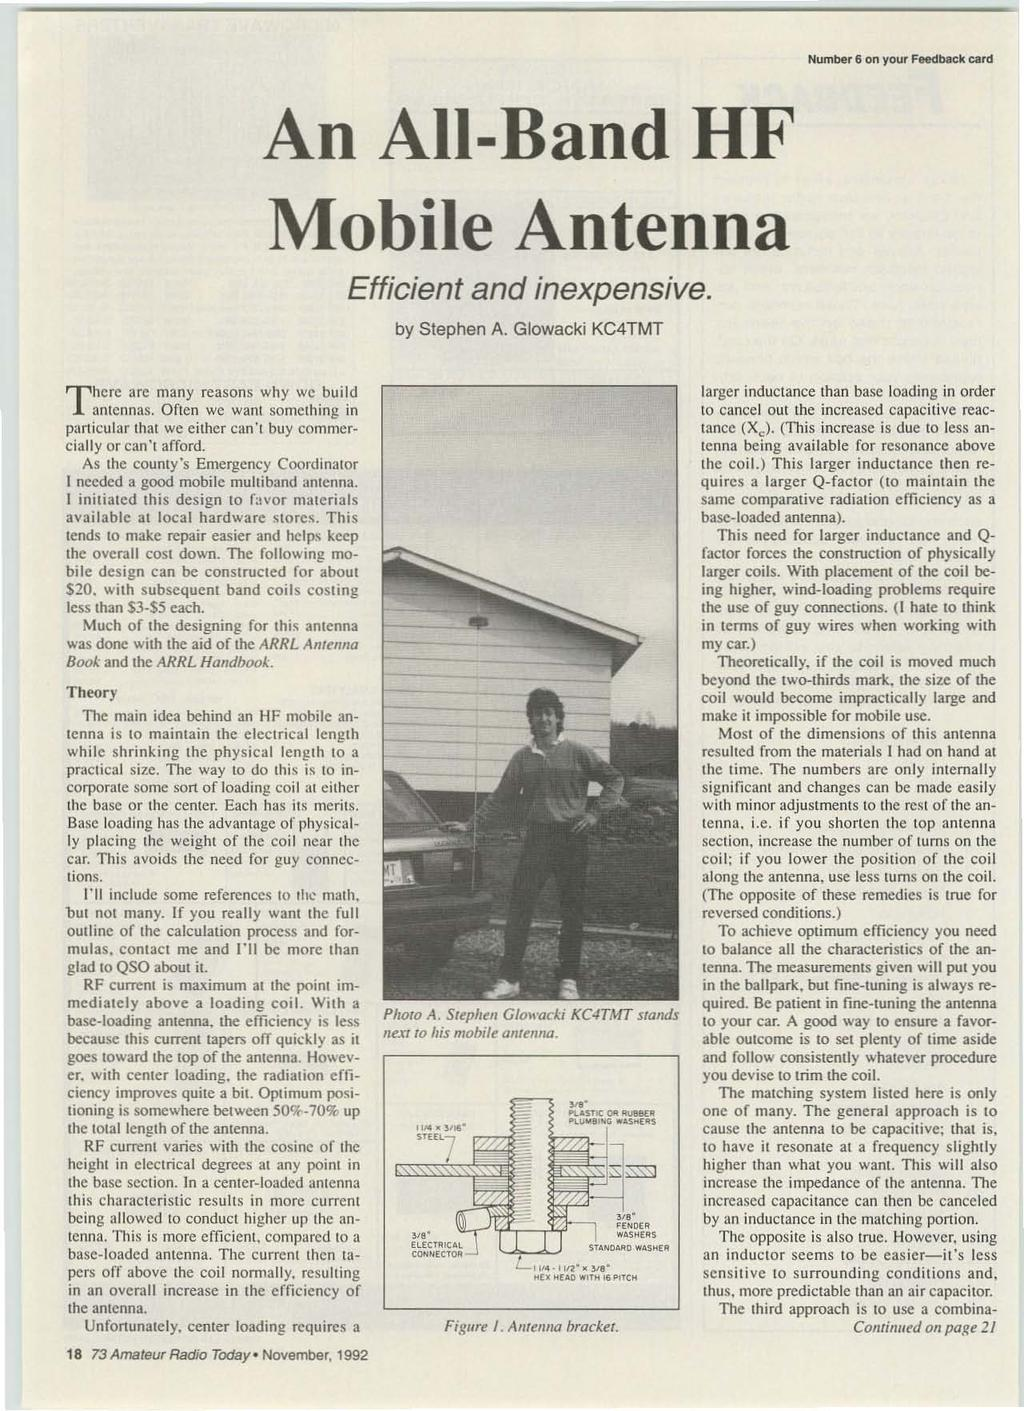 80/40 QRP Rig  Build An HF All-Band Mobile Antenna  What is Spread